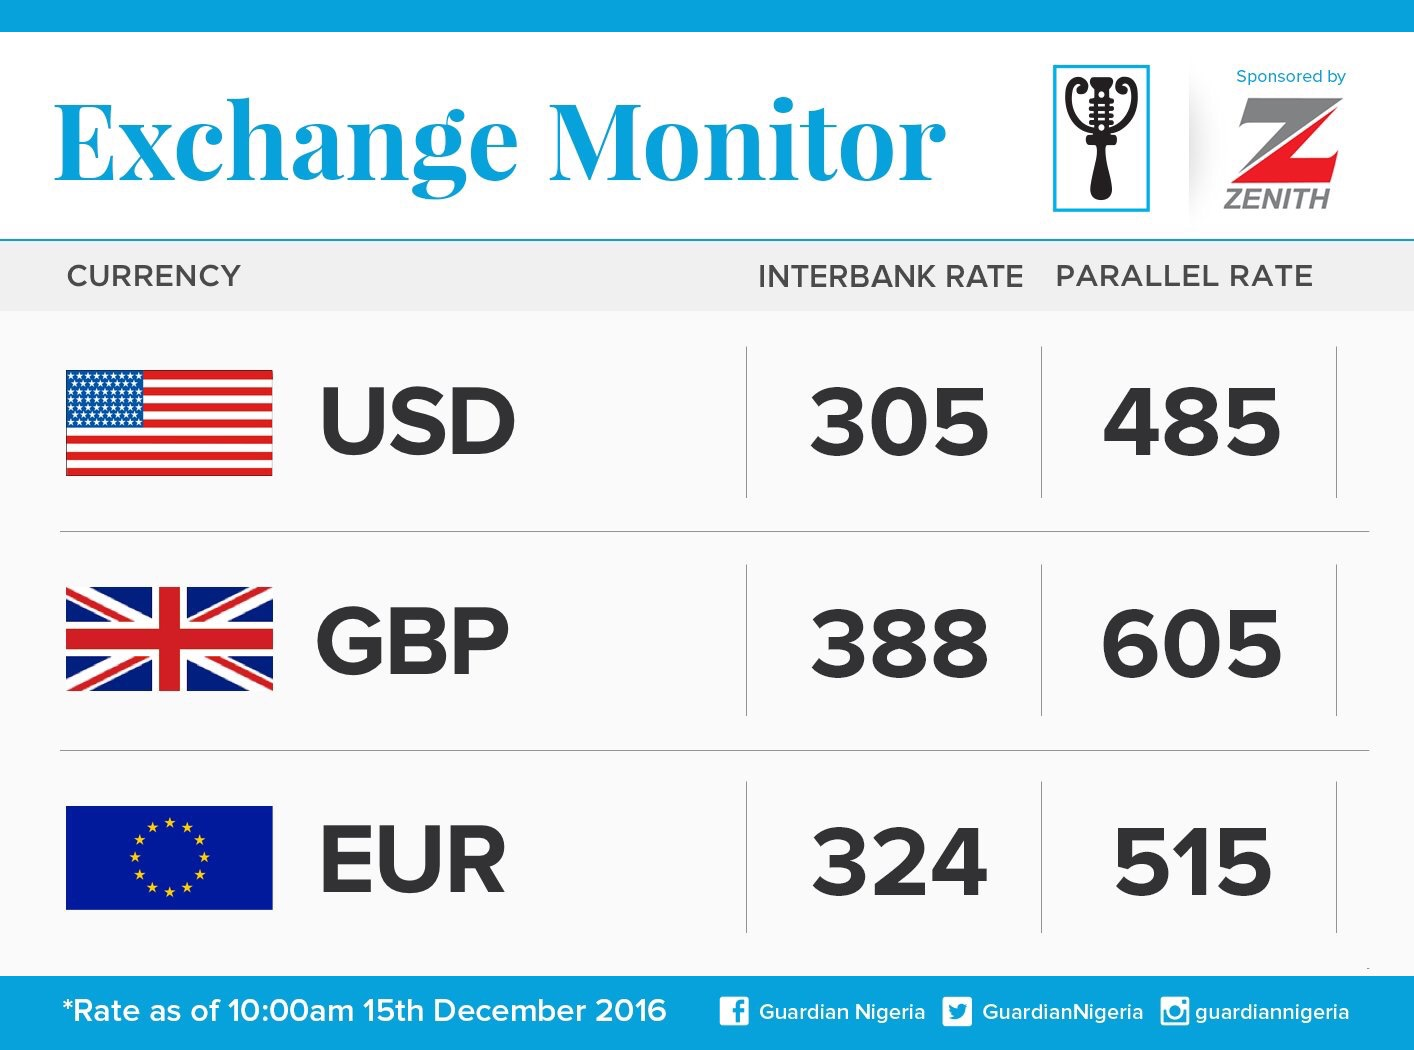 Exchange Rate For 15th December 2016